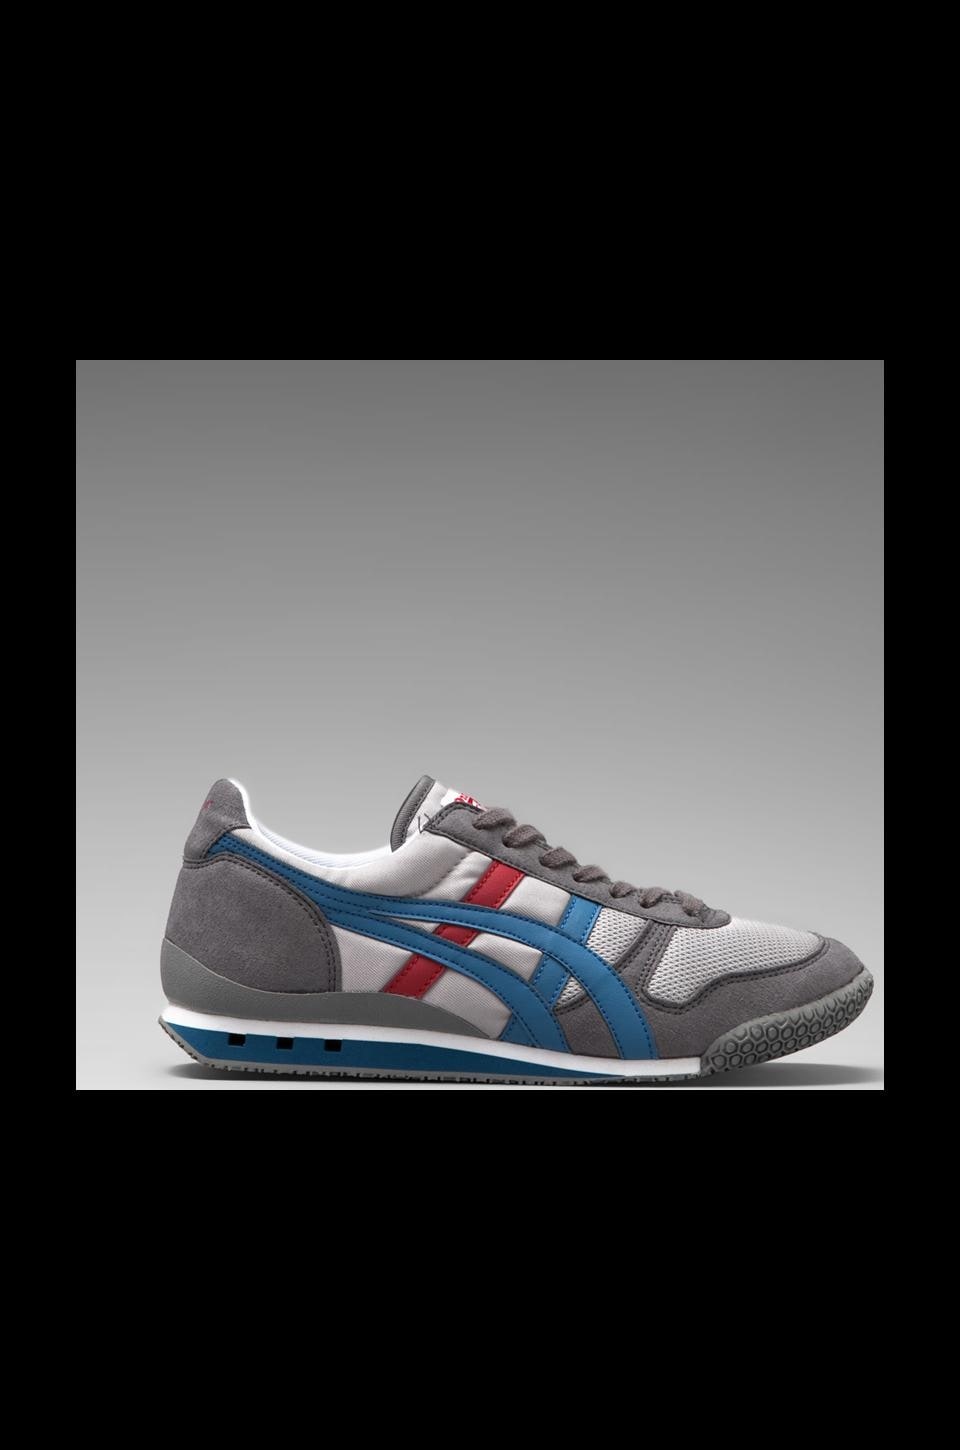 Onitsuka Tiger Ultimate 81 in Light Grey/Captain Blue